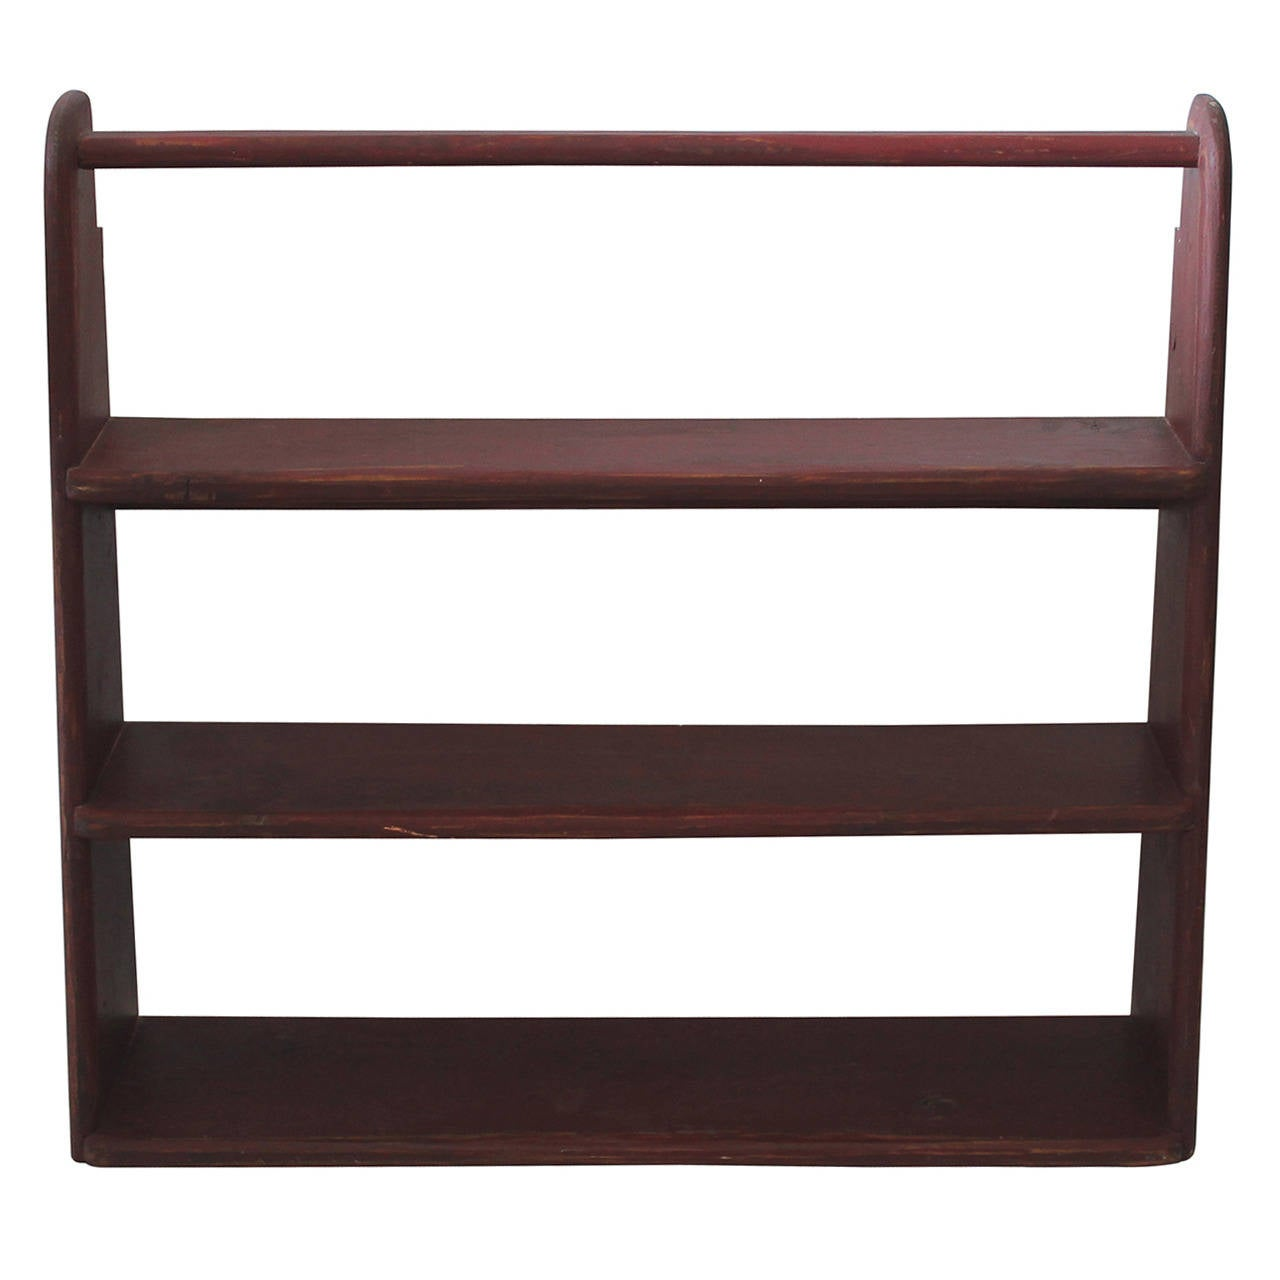 19th Century Original Red Painted Canted Shelf For Sale At